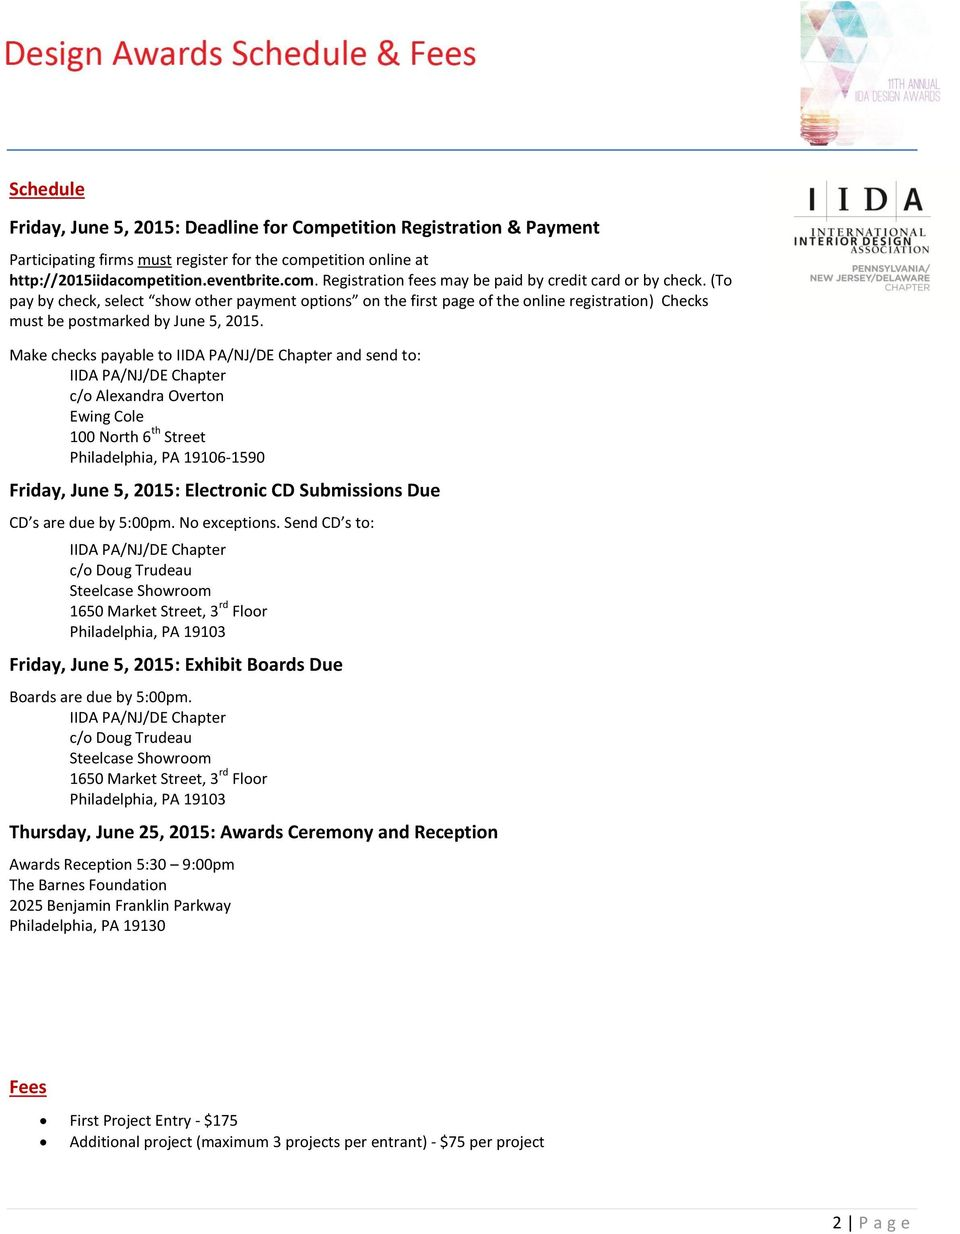 Make checks payable to IIDA PA/NJ/DE Chapter and send to: IIDA PA/NJ/DE Chapter c/o Alexandra Overton Ewing Cole 100 North 6 th Street Philadelphia, PA 19106-1590 Friday, June 5, 2015: Electronic CD